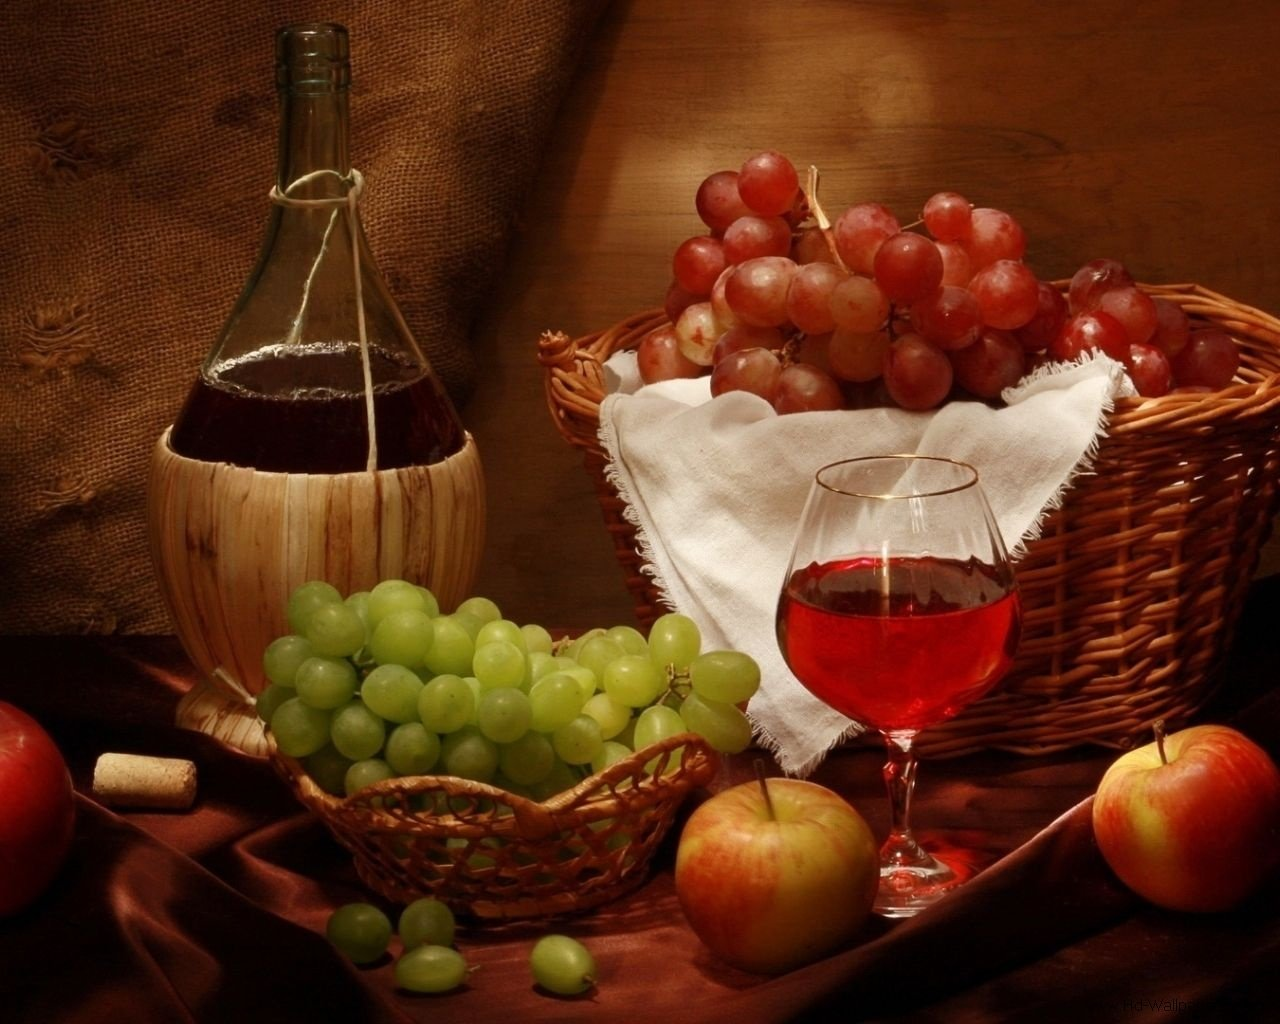 Food And Drink Hd Wallpapers Photos